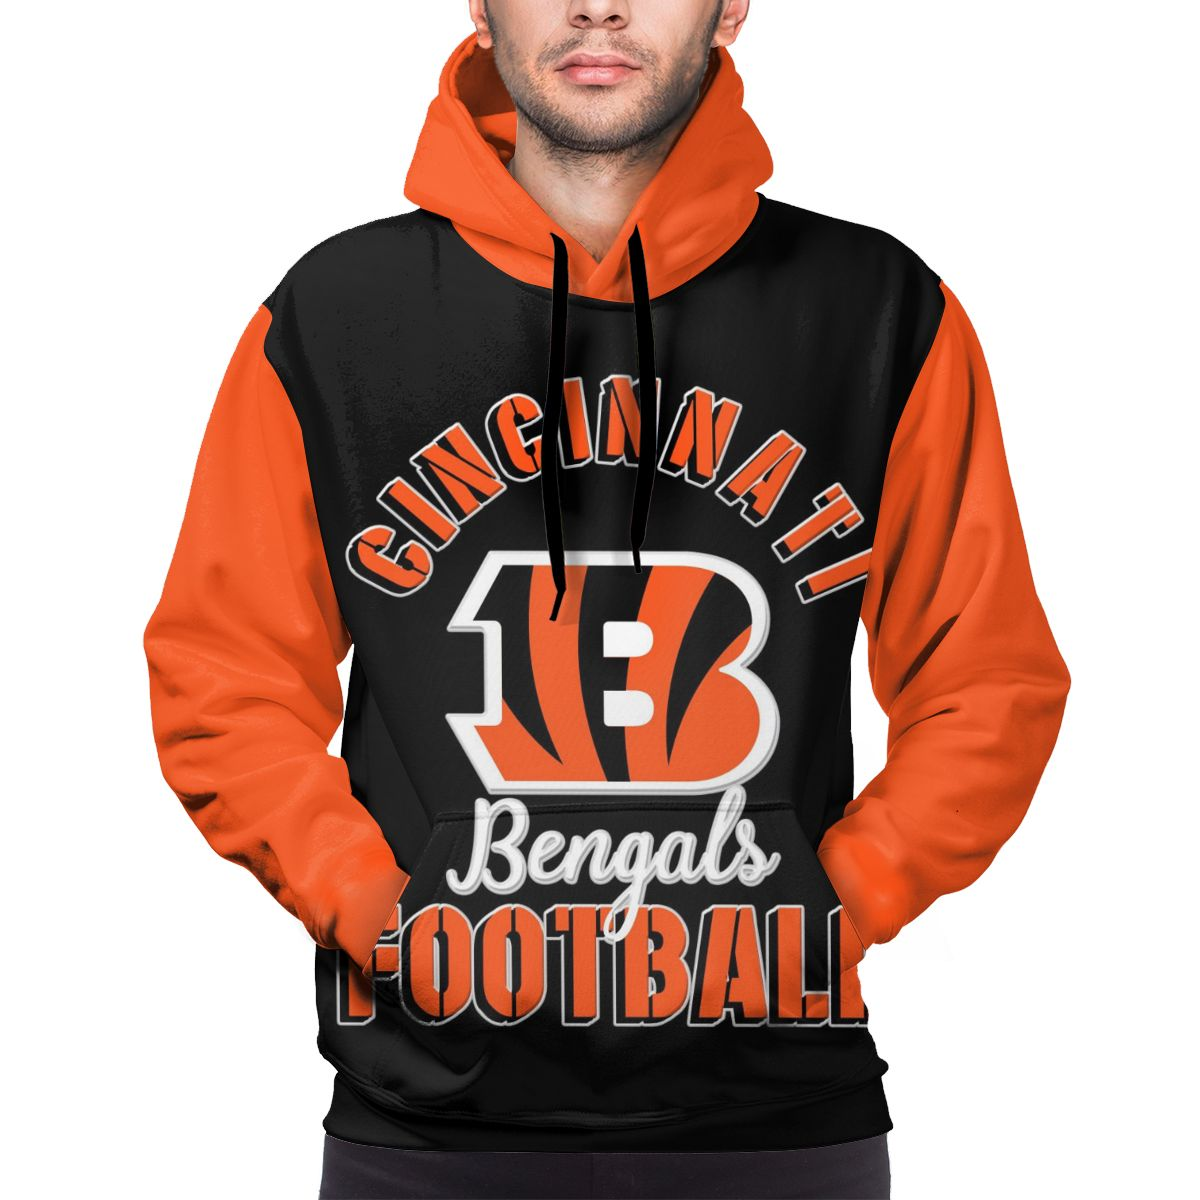 Bengals Football Team Customize Hoodies For Men Pullover Sweatshirt